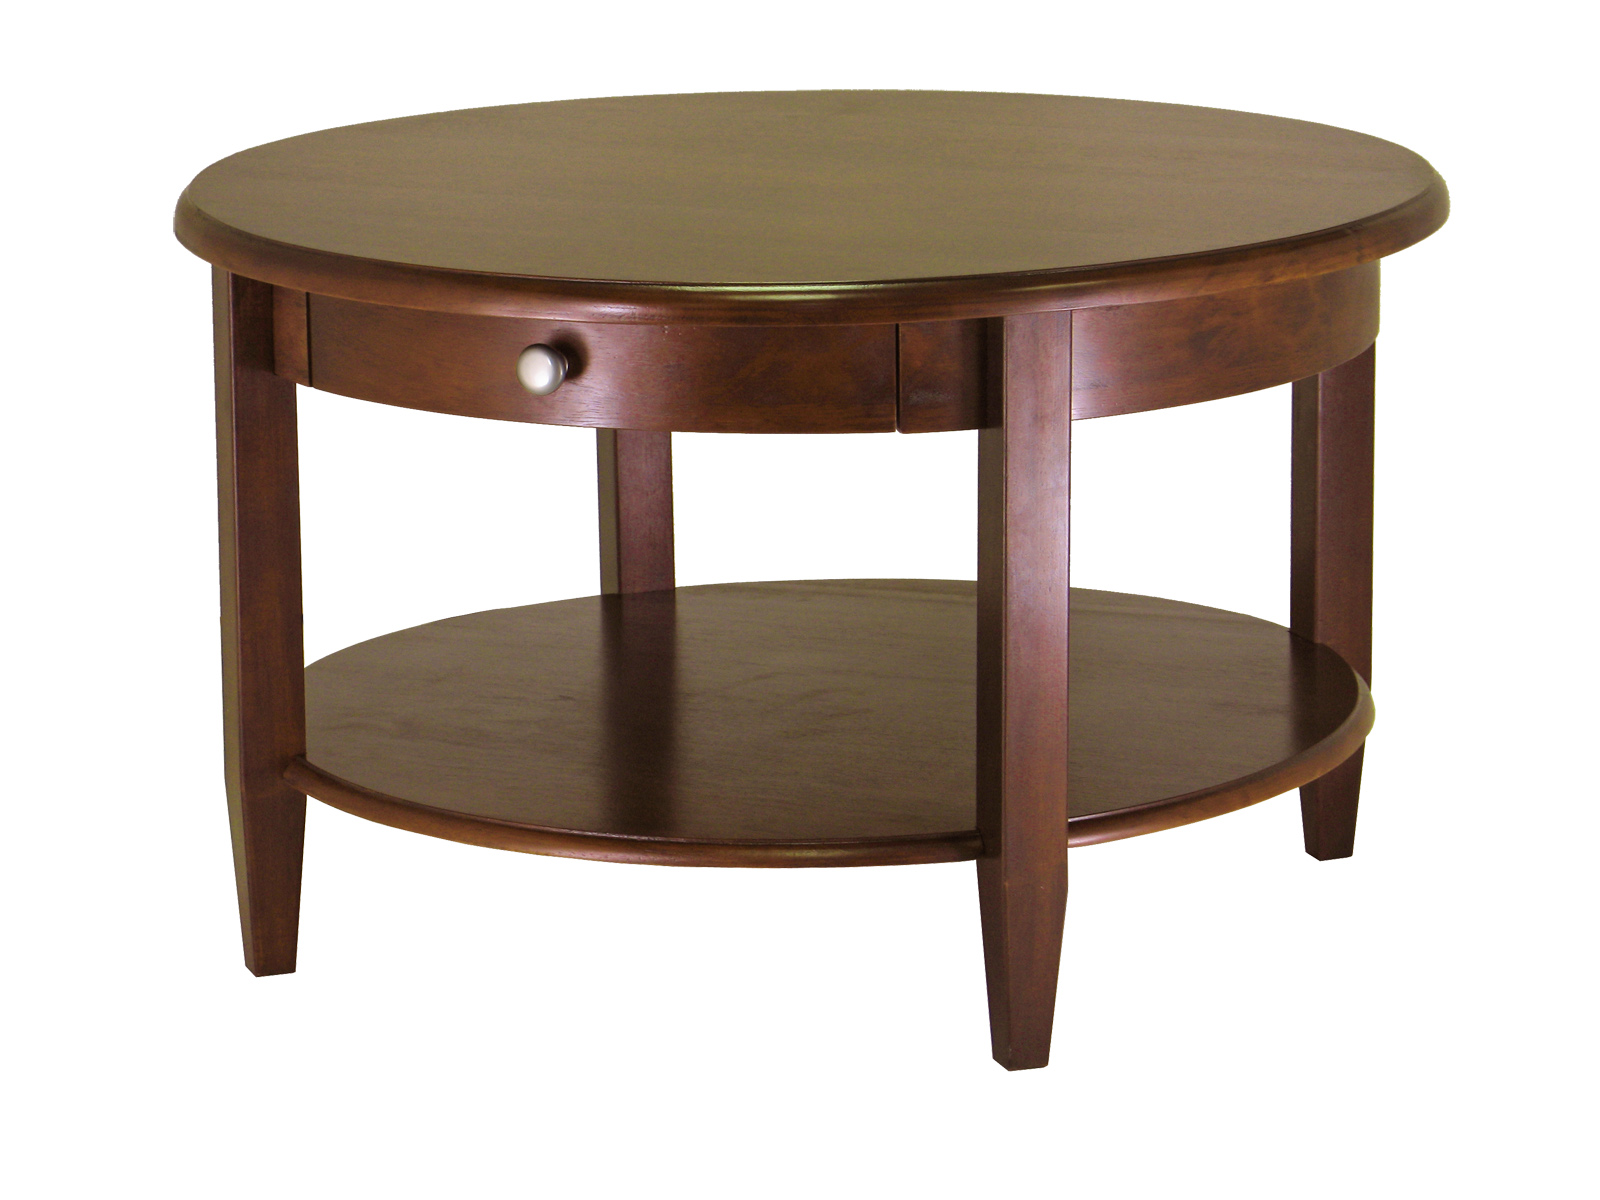 Winsome 94231 Concord Round Coffee Table Antique Walnut